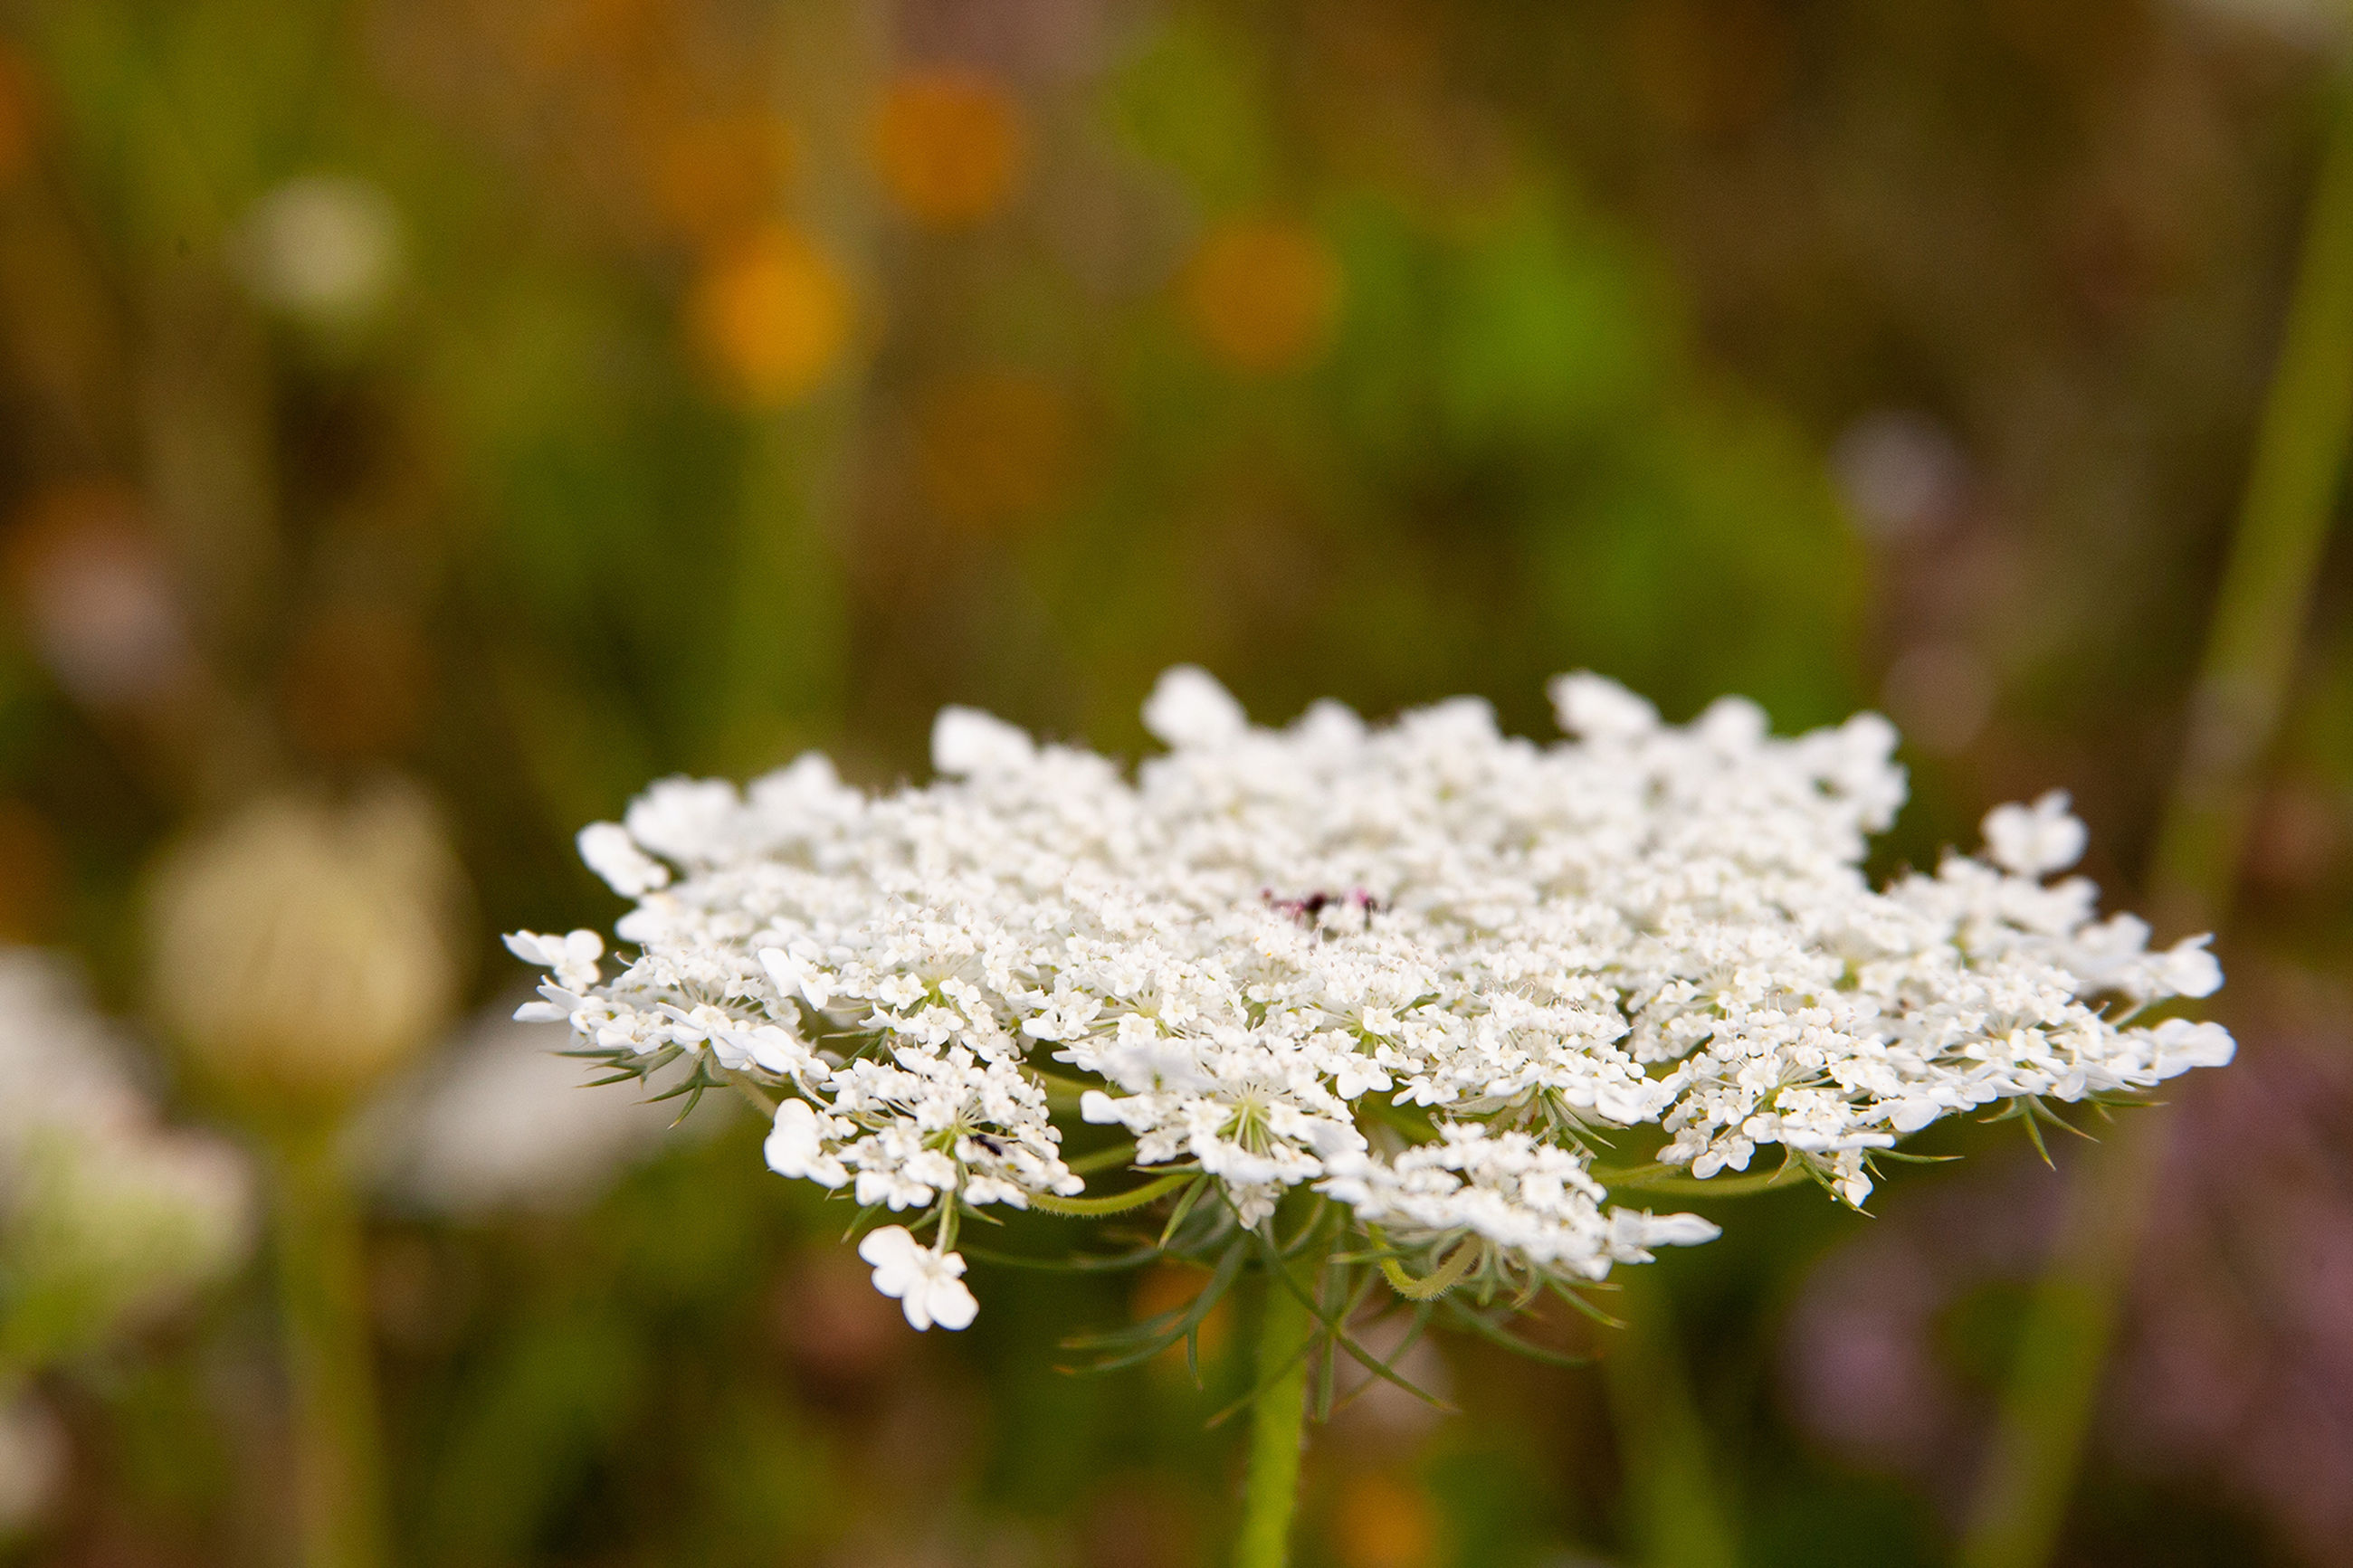 plant, flower, flowering plant, white color, beauty in nature, freshness, growth, close-up, focus on foreground, vulnerability, nature, fragility, no people, day, selective focus, land, outdoors, petal, flower head, tree